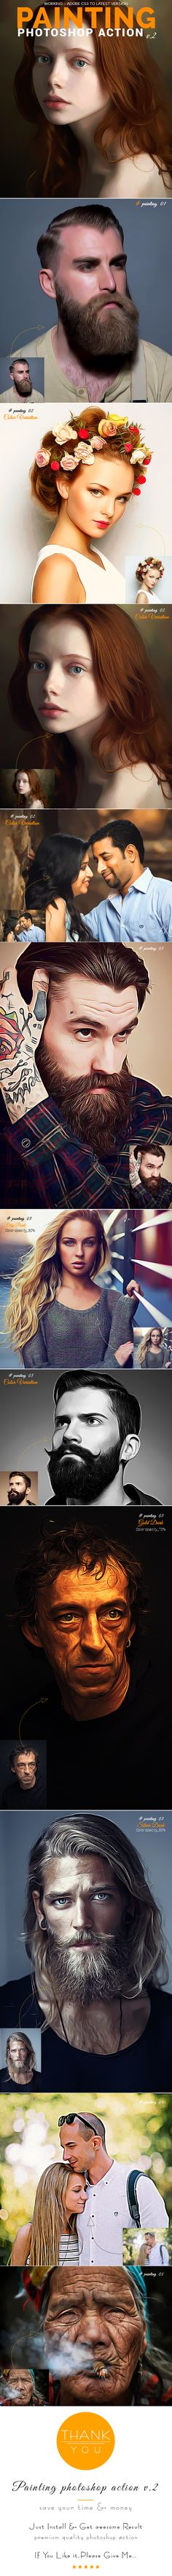 Painting Photoshop Action v.2 - Photo Effects #Actions #PSAction #Photoshop #PS #Graphicriver #PhotoEffects #Digitalart #Design #art #paint #oilpainting #painting